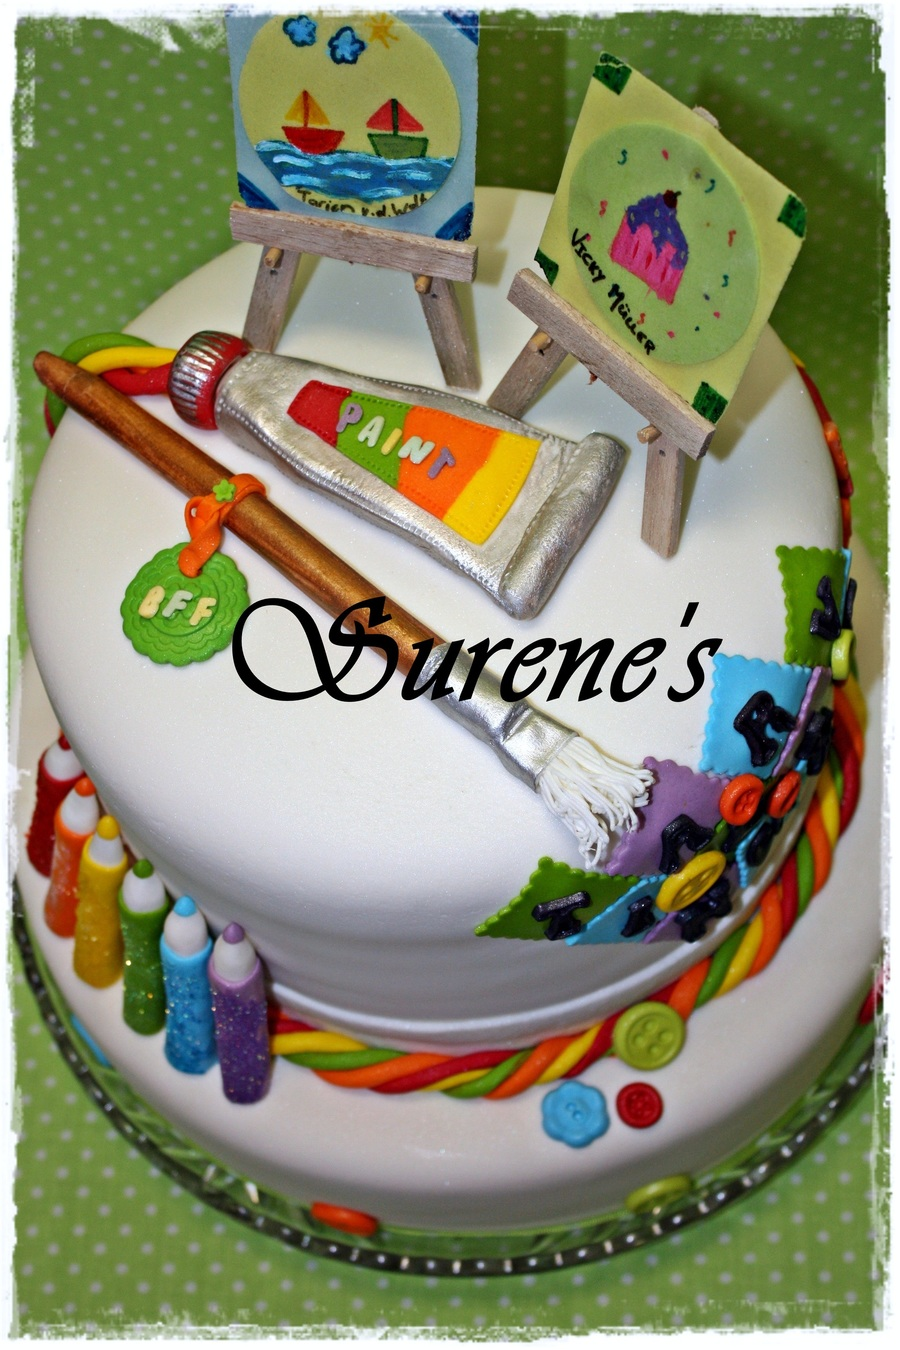 Cake Ideas For Artist : Arts & Crafts Cake - CakeCentral.com